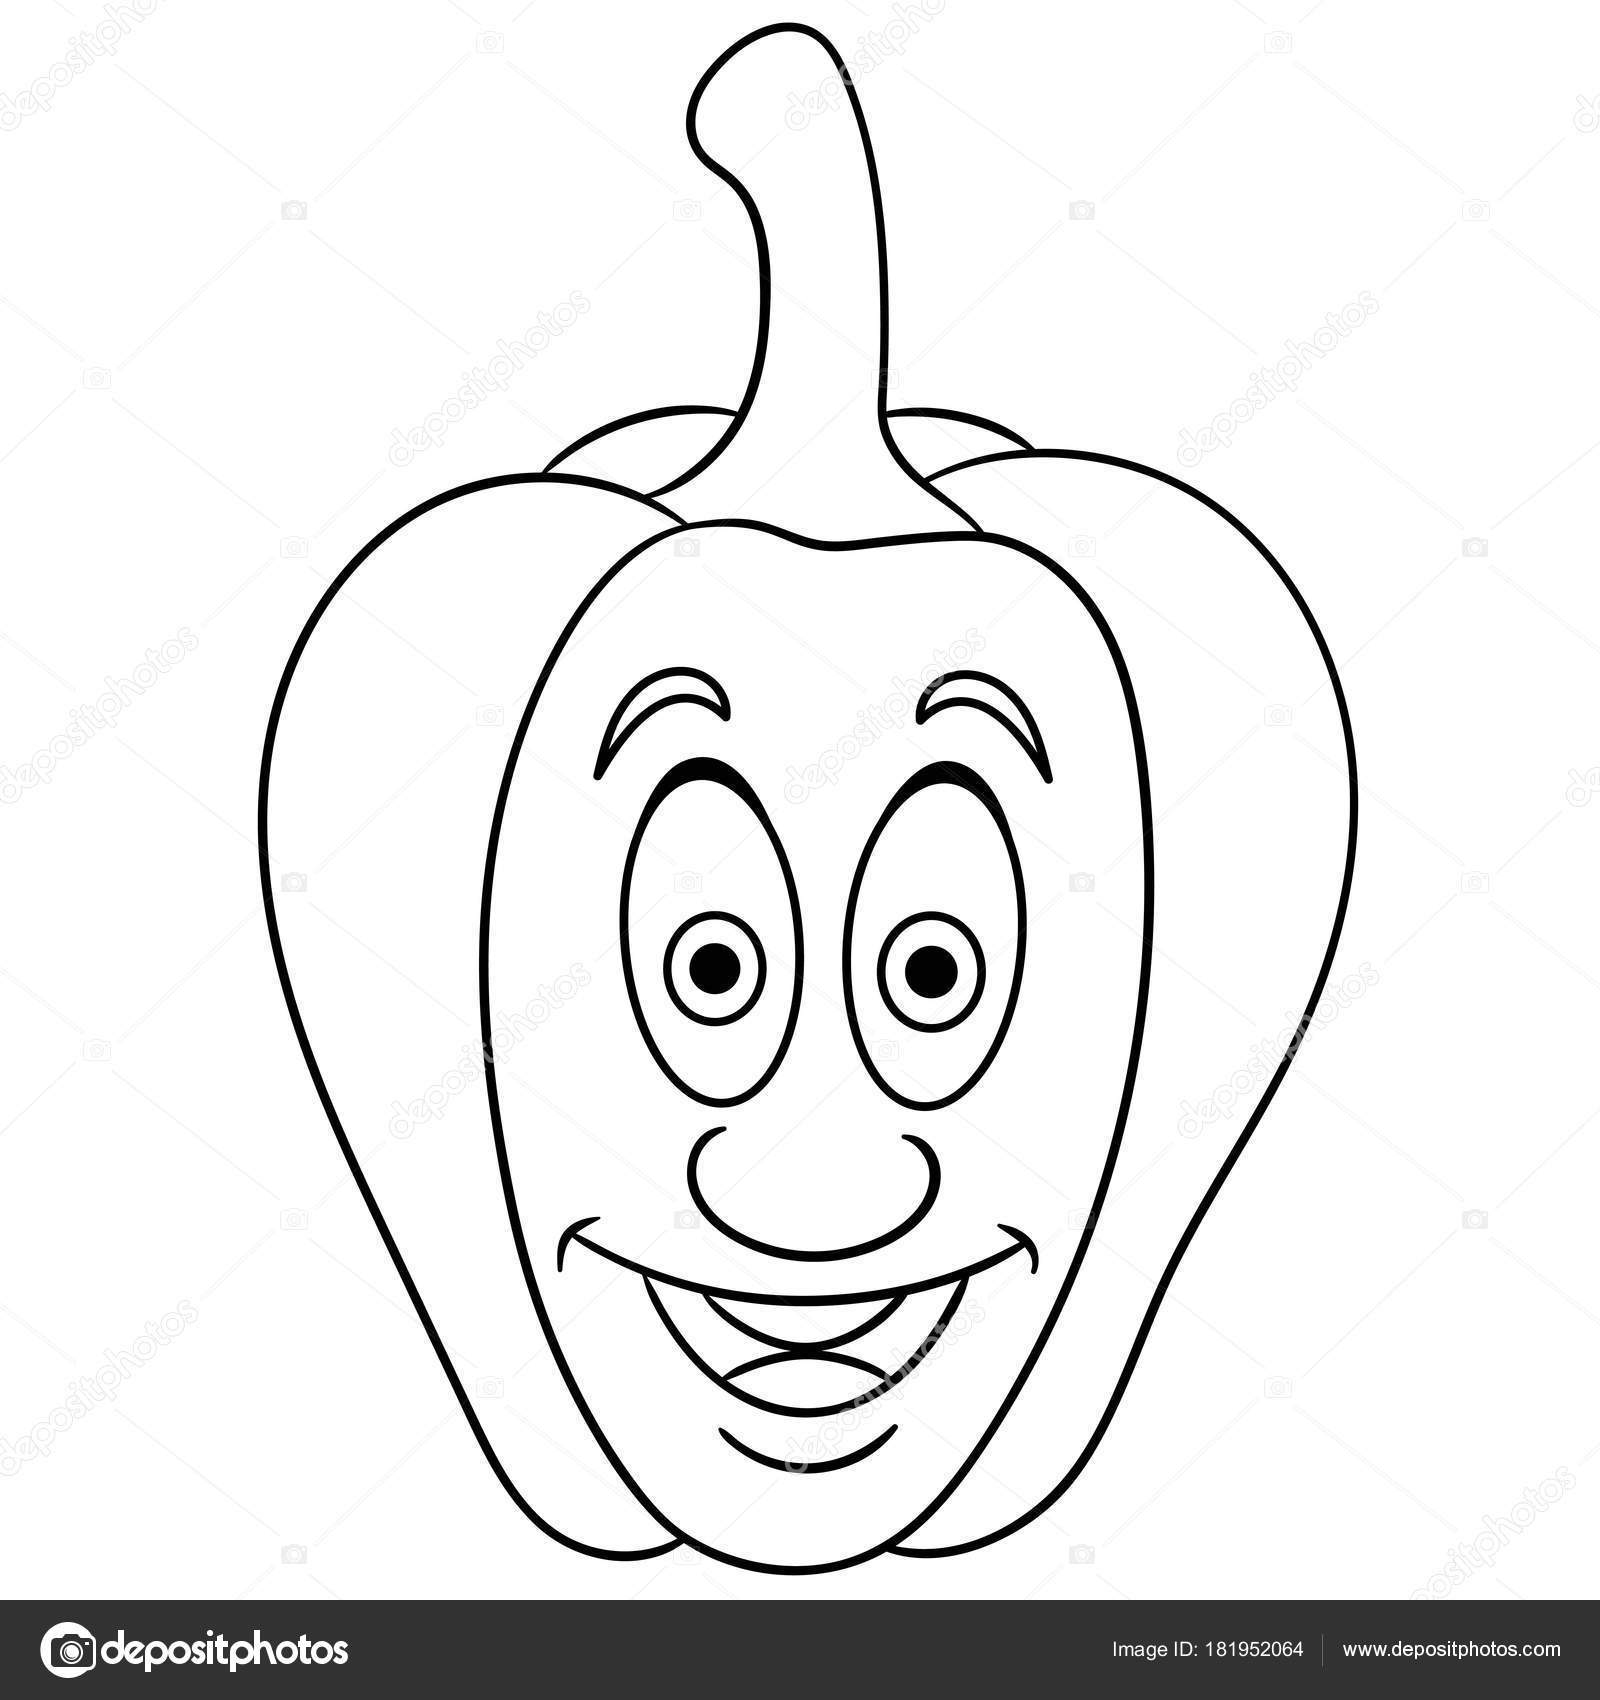 Bell Pepper Coloring Page Coloring Page Cartoon Bell Pepper Happy Vegetable Character Eco Food Stock Vector C Sybirko 181952064